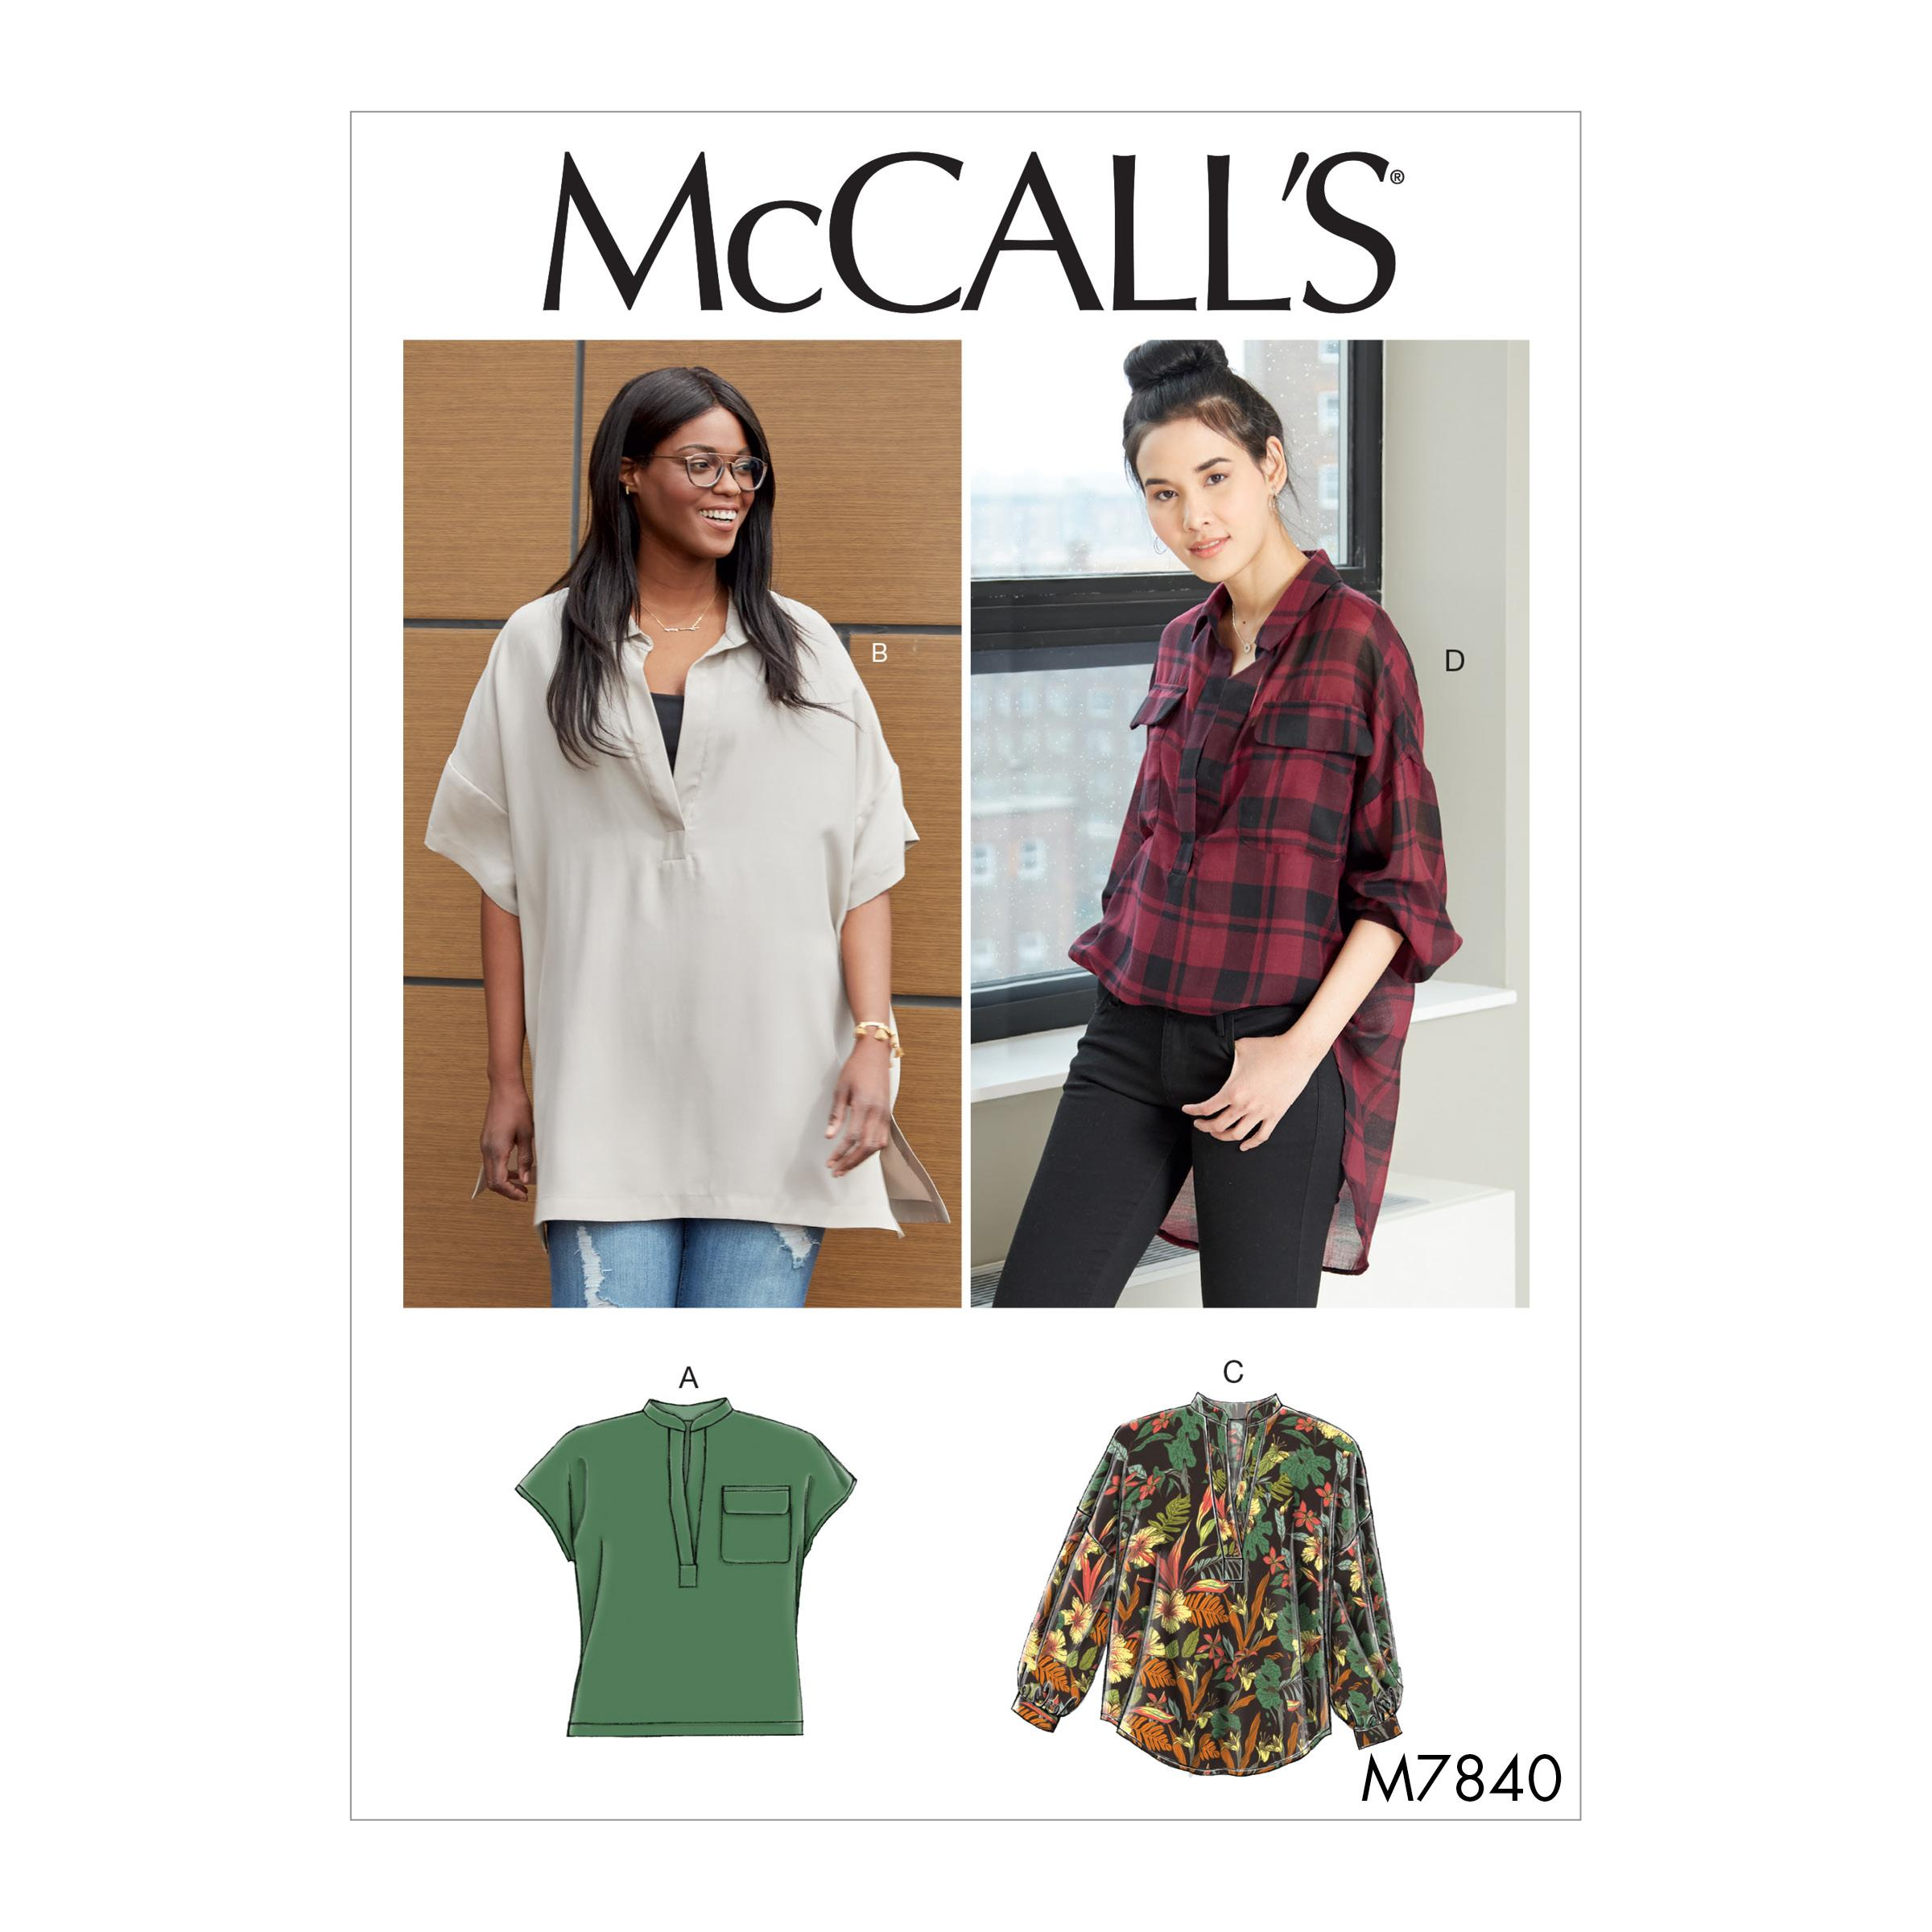 McCalls M7840 Misses Tops, Plus Sizes